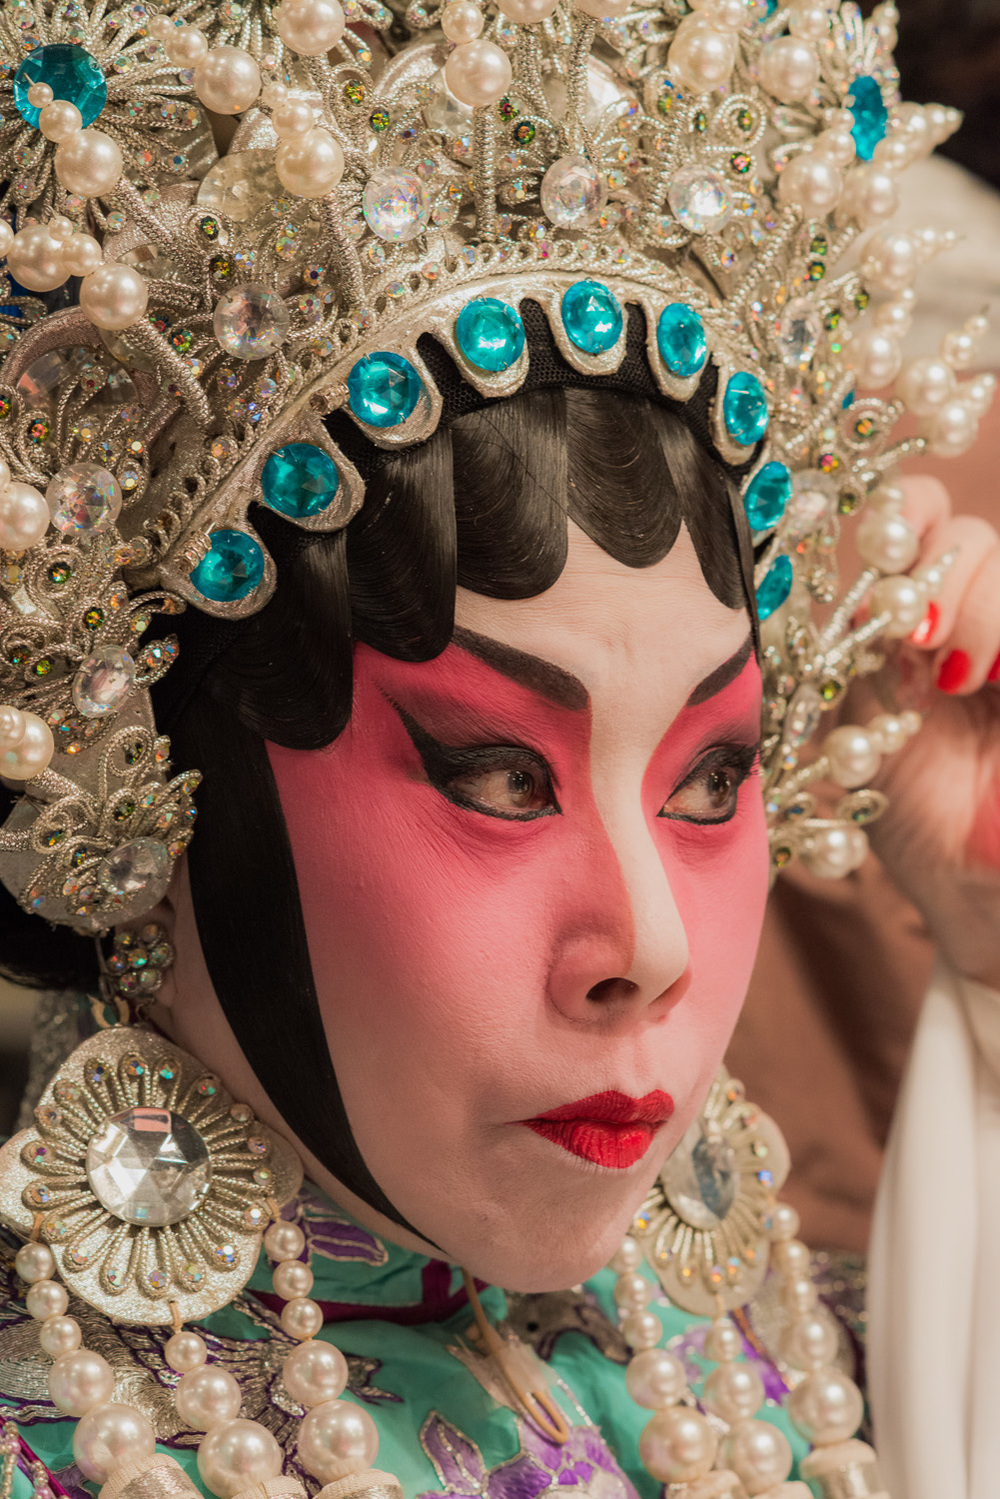 201402041847DSC_6690-Edit-Cantonese Opera Make up.jpg